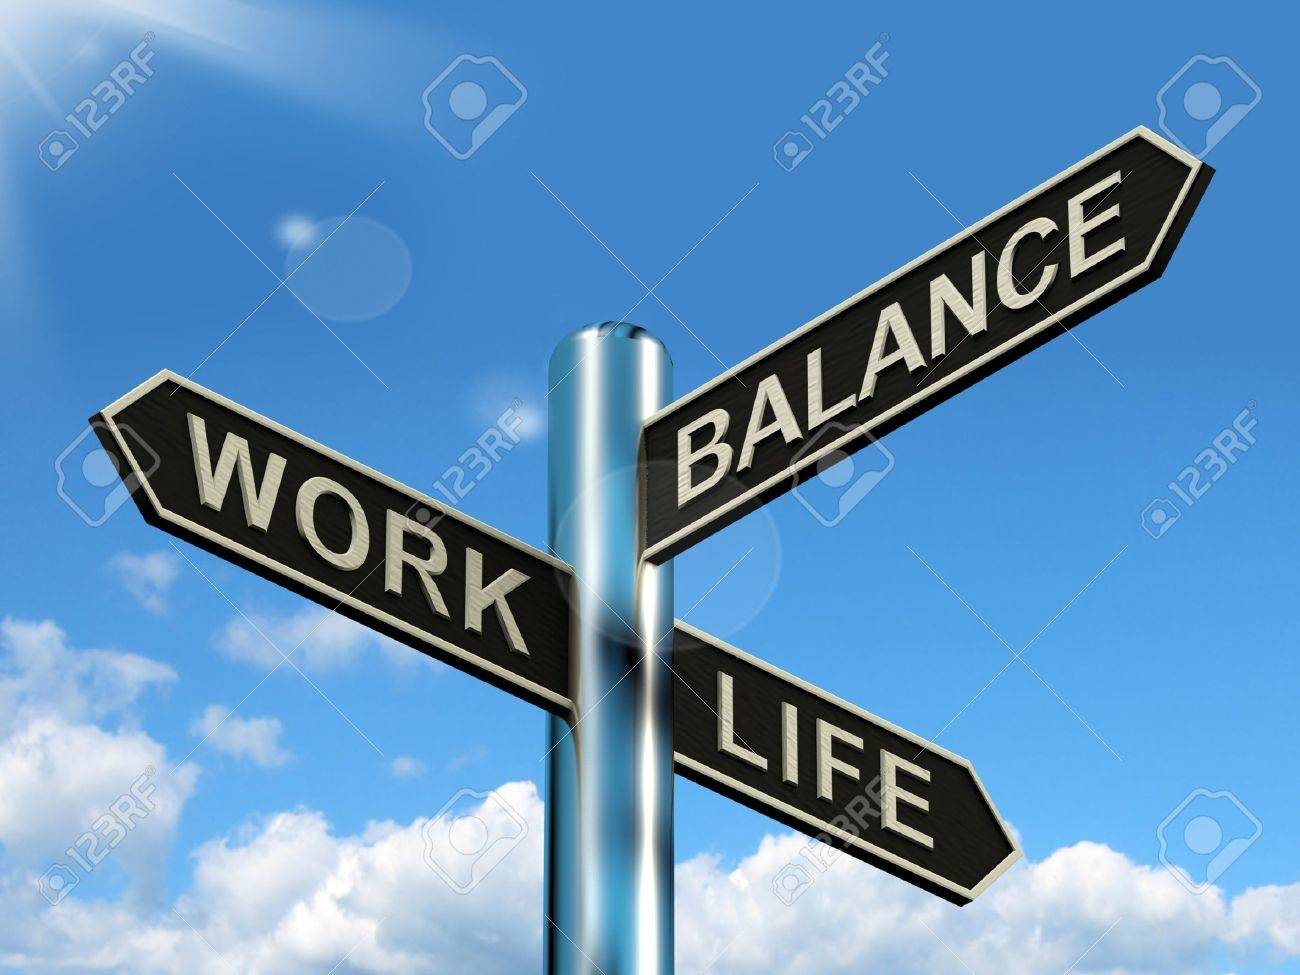 work life balance signpost shows career and leisure harmony stock stock photo work life balance signpost shows career and leisure harmony